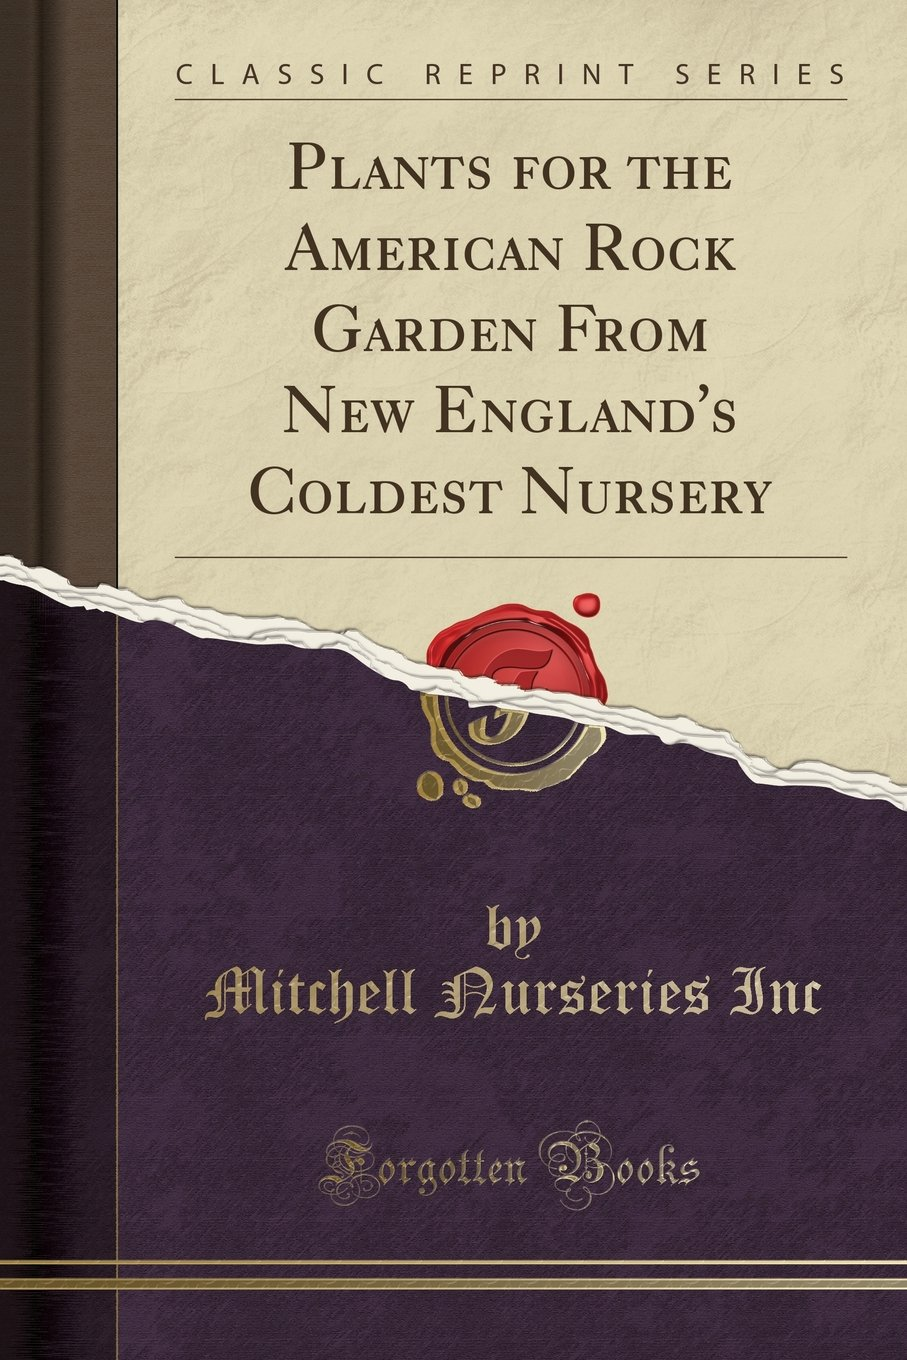 Plants for the American Rock Garden From New England's Coldest Nursery (Classic Reprint) pdf